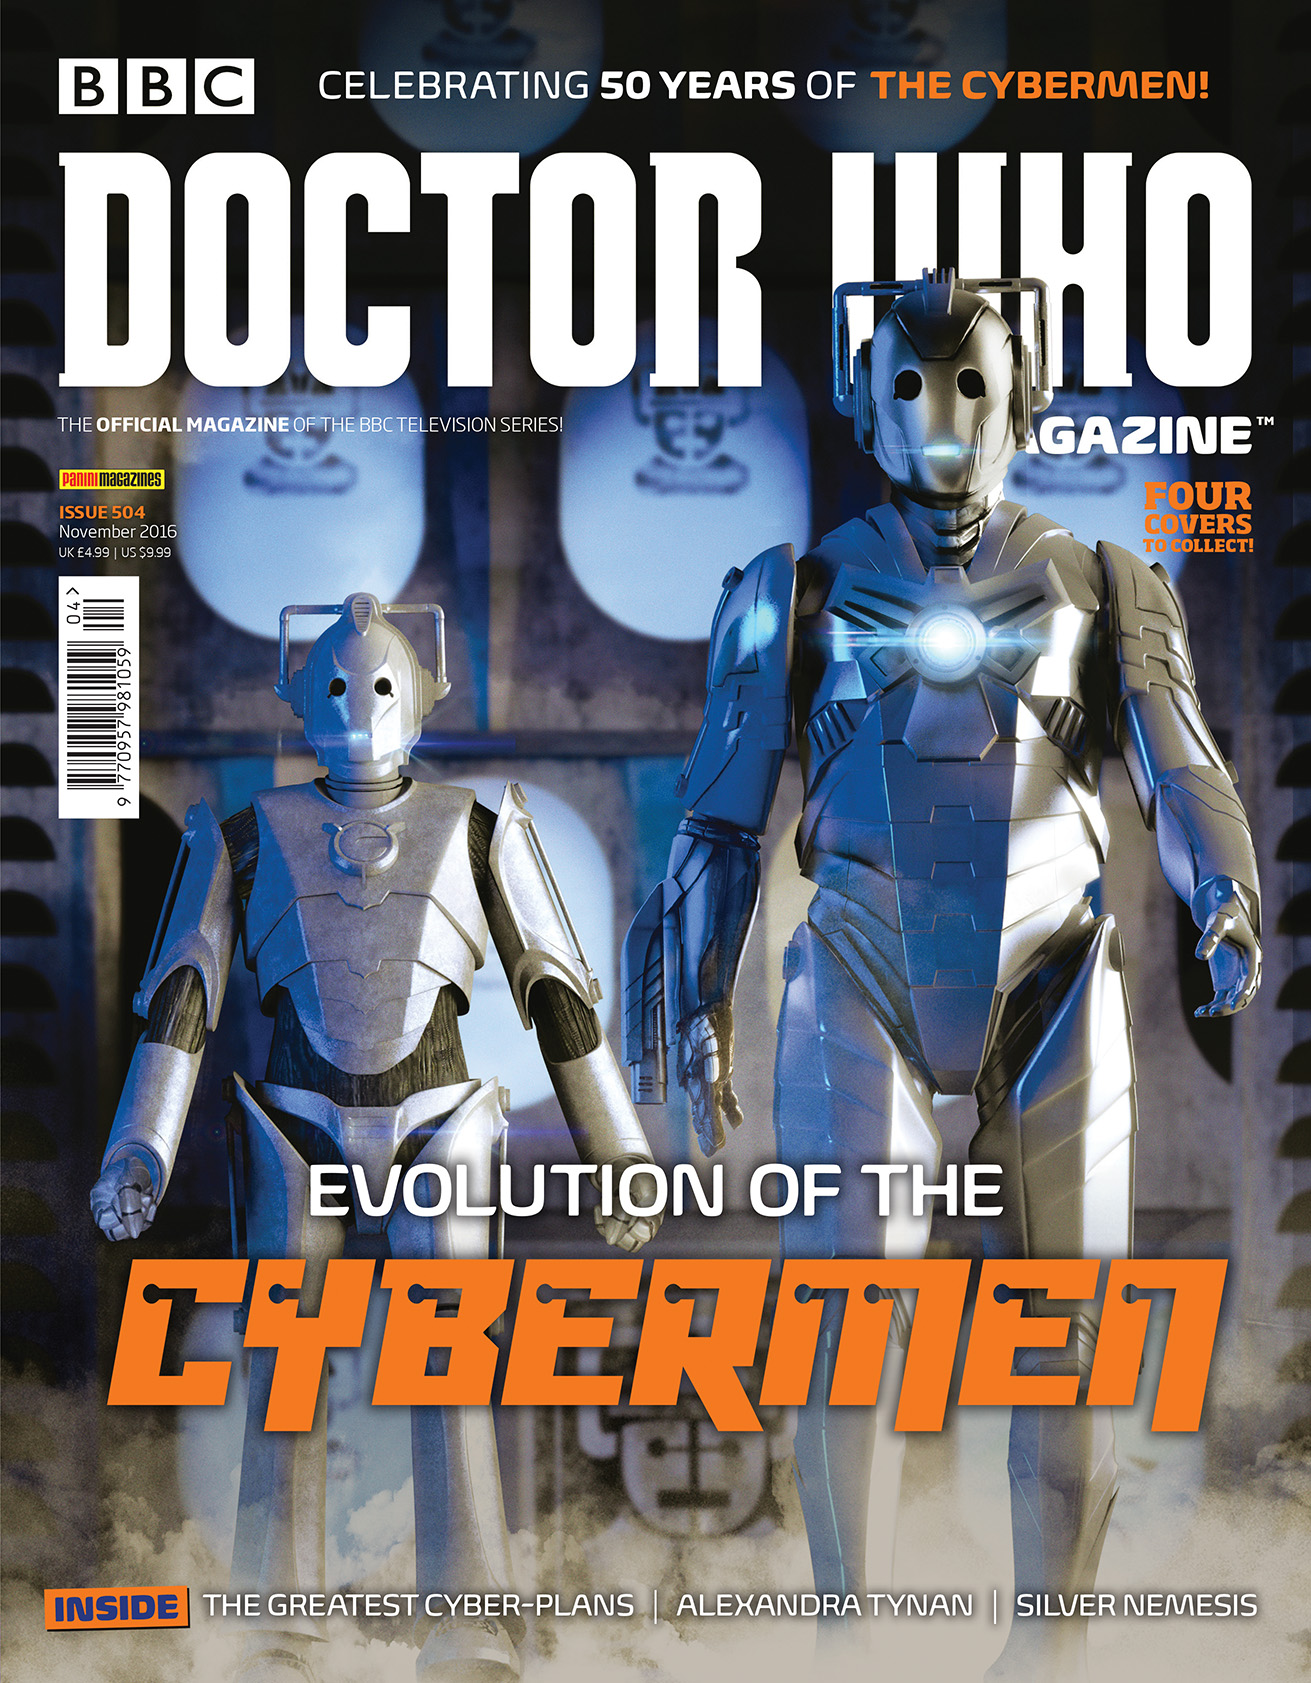 Doctor Who Magazine issue 504 (21st Century Cybermen) (Credit: DWM)